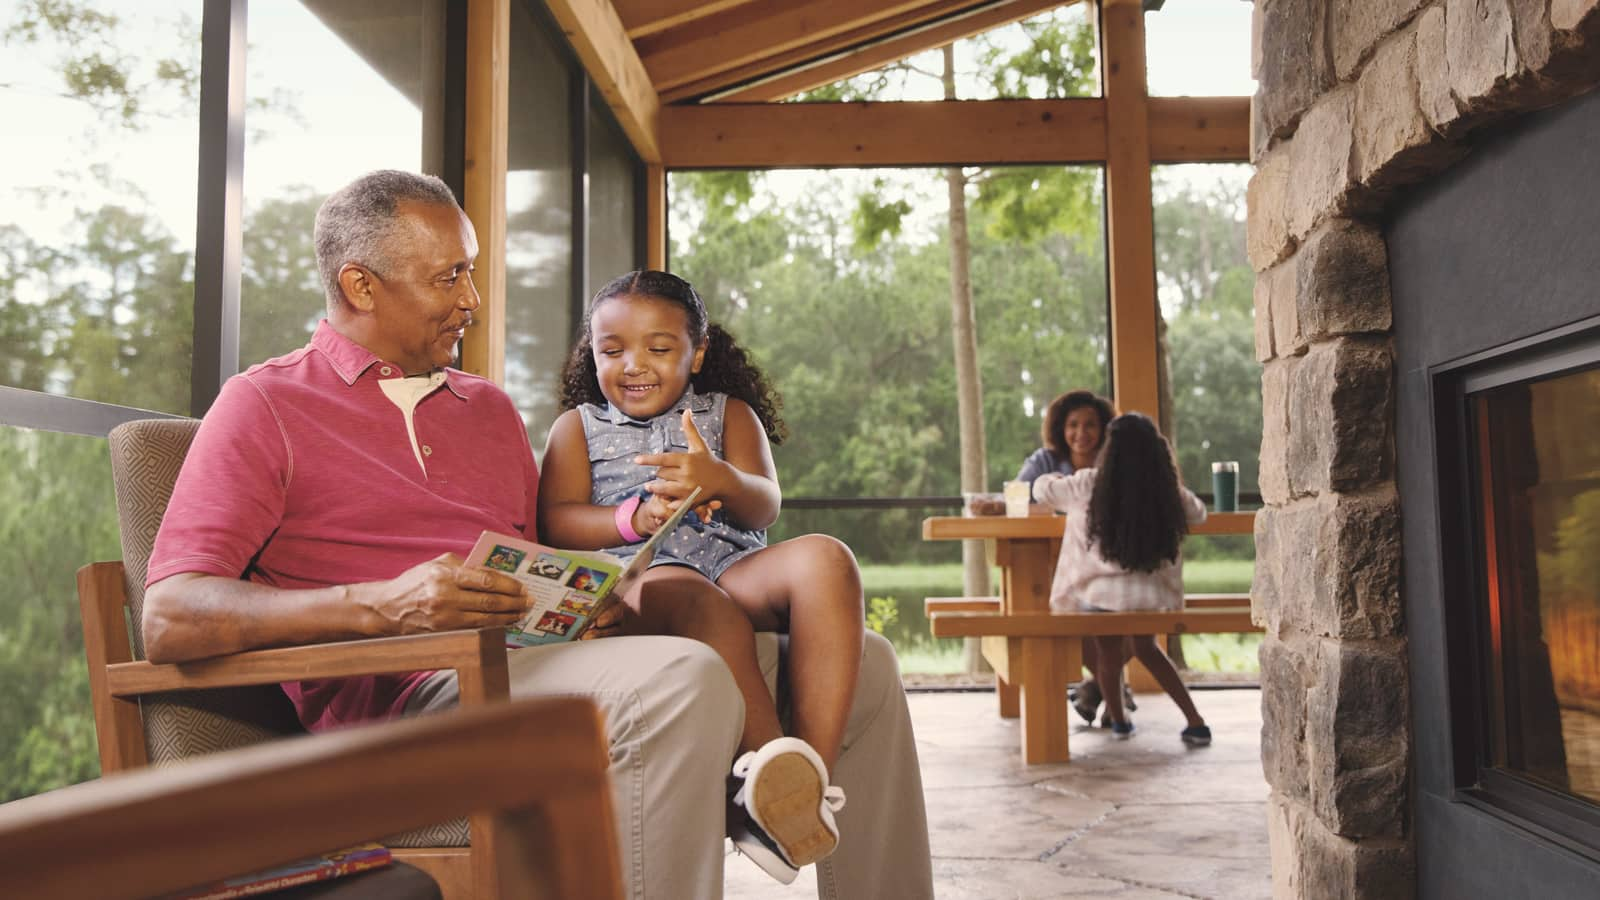 A grandfather, his daughter and 2 granddaughters relax in an outdoor living area